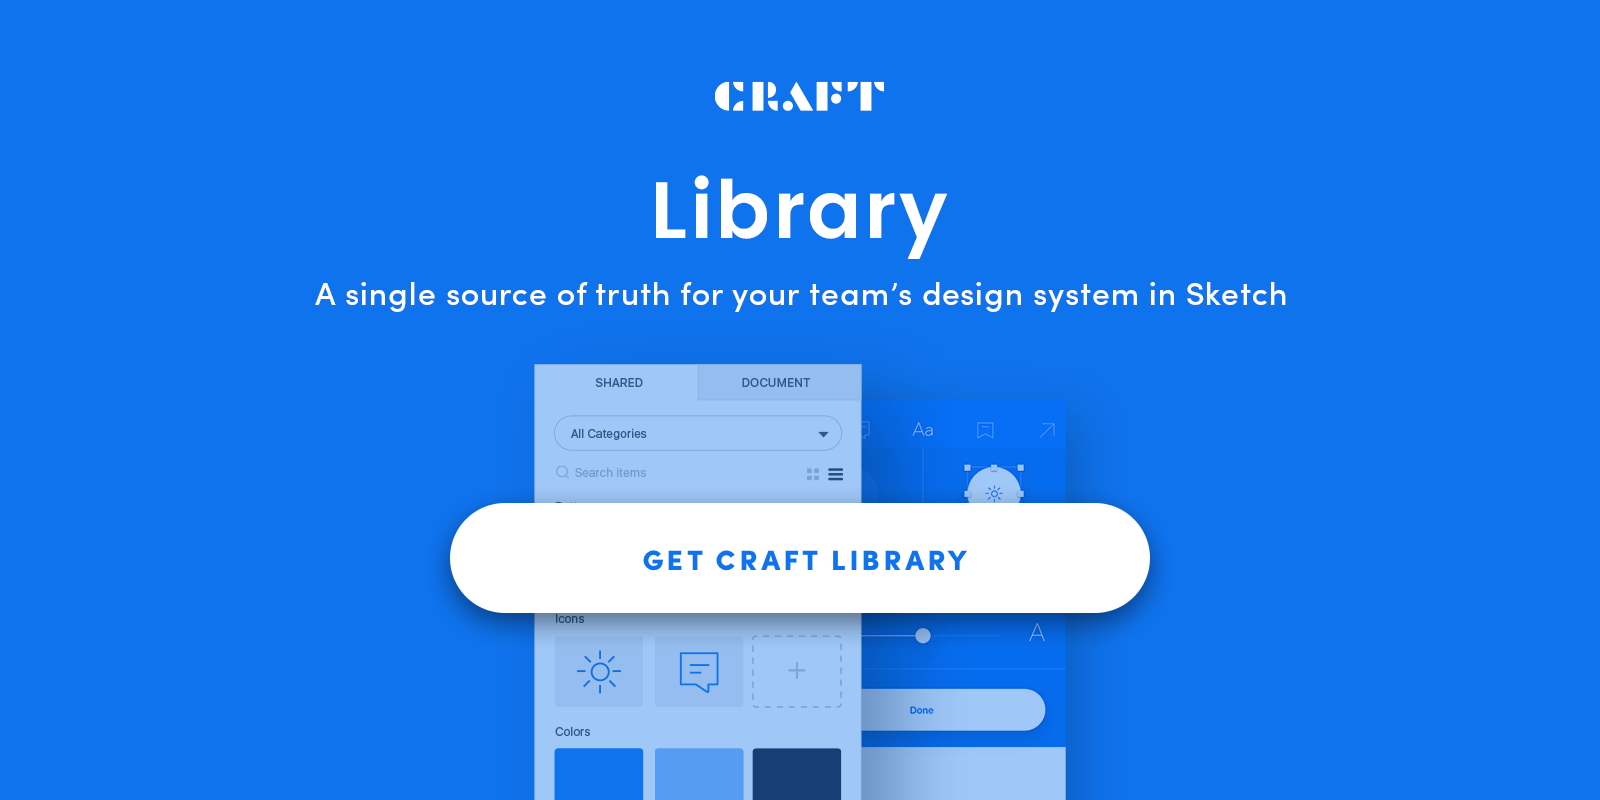 Get Craft Library